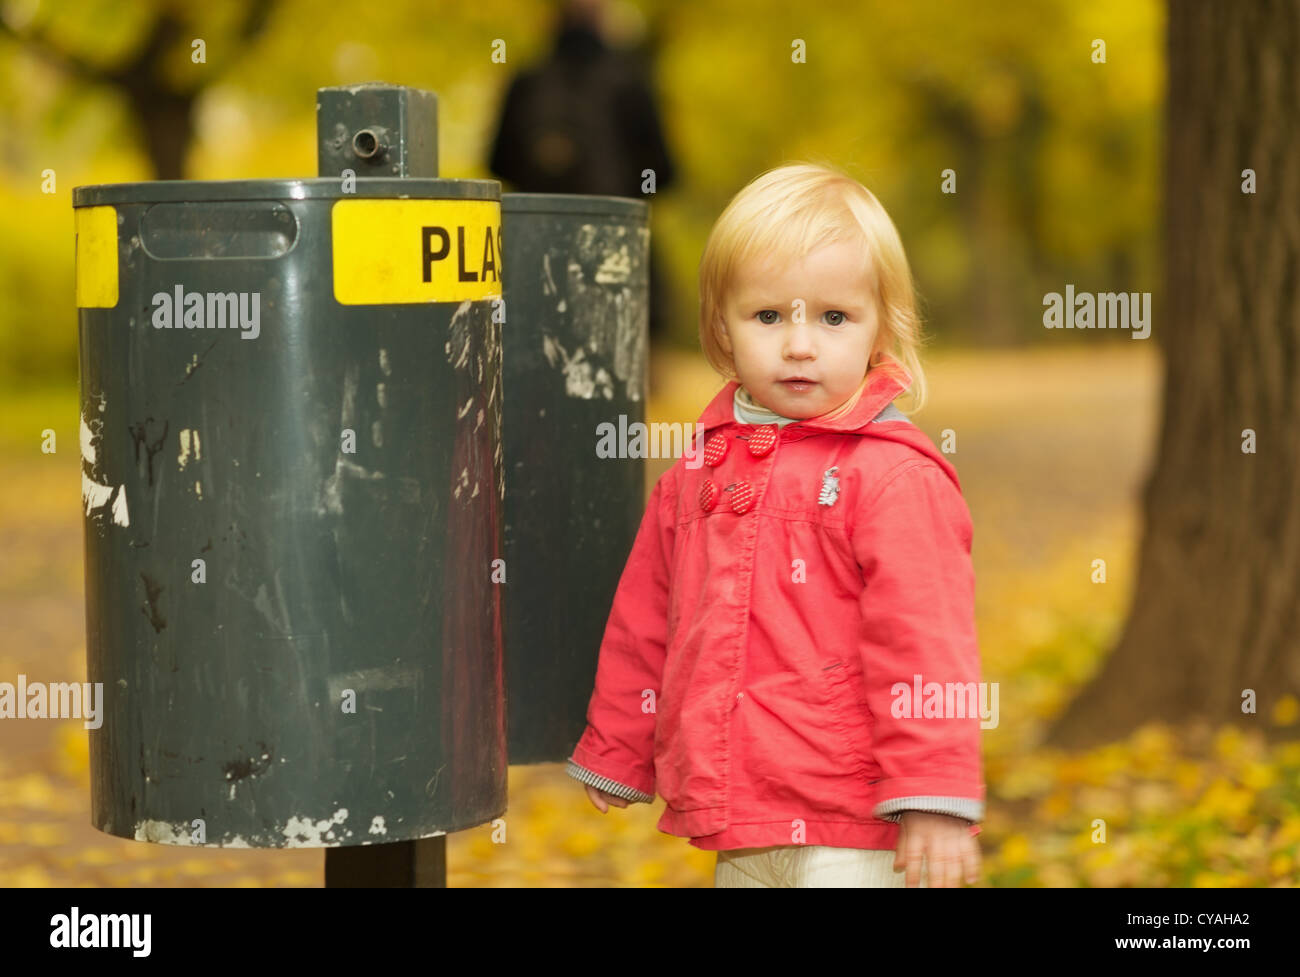 Portrait of baby near trash can - Stock Image